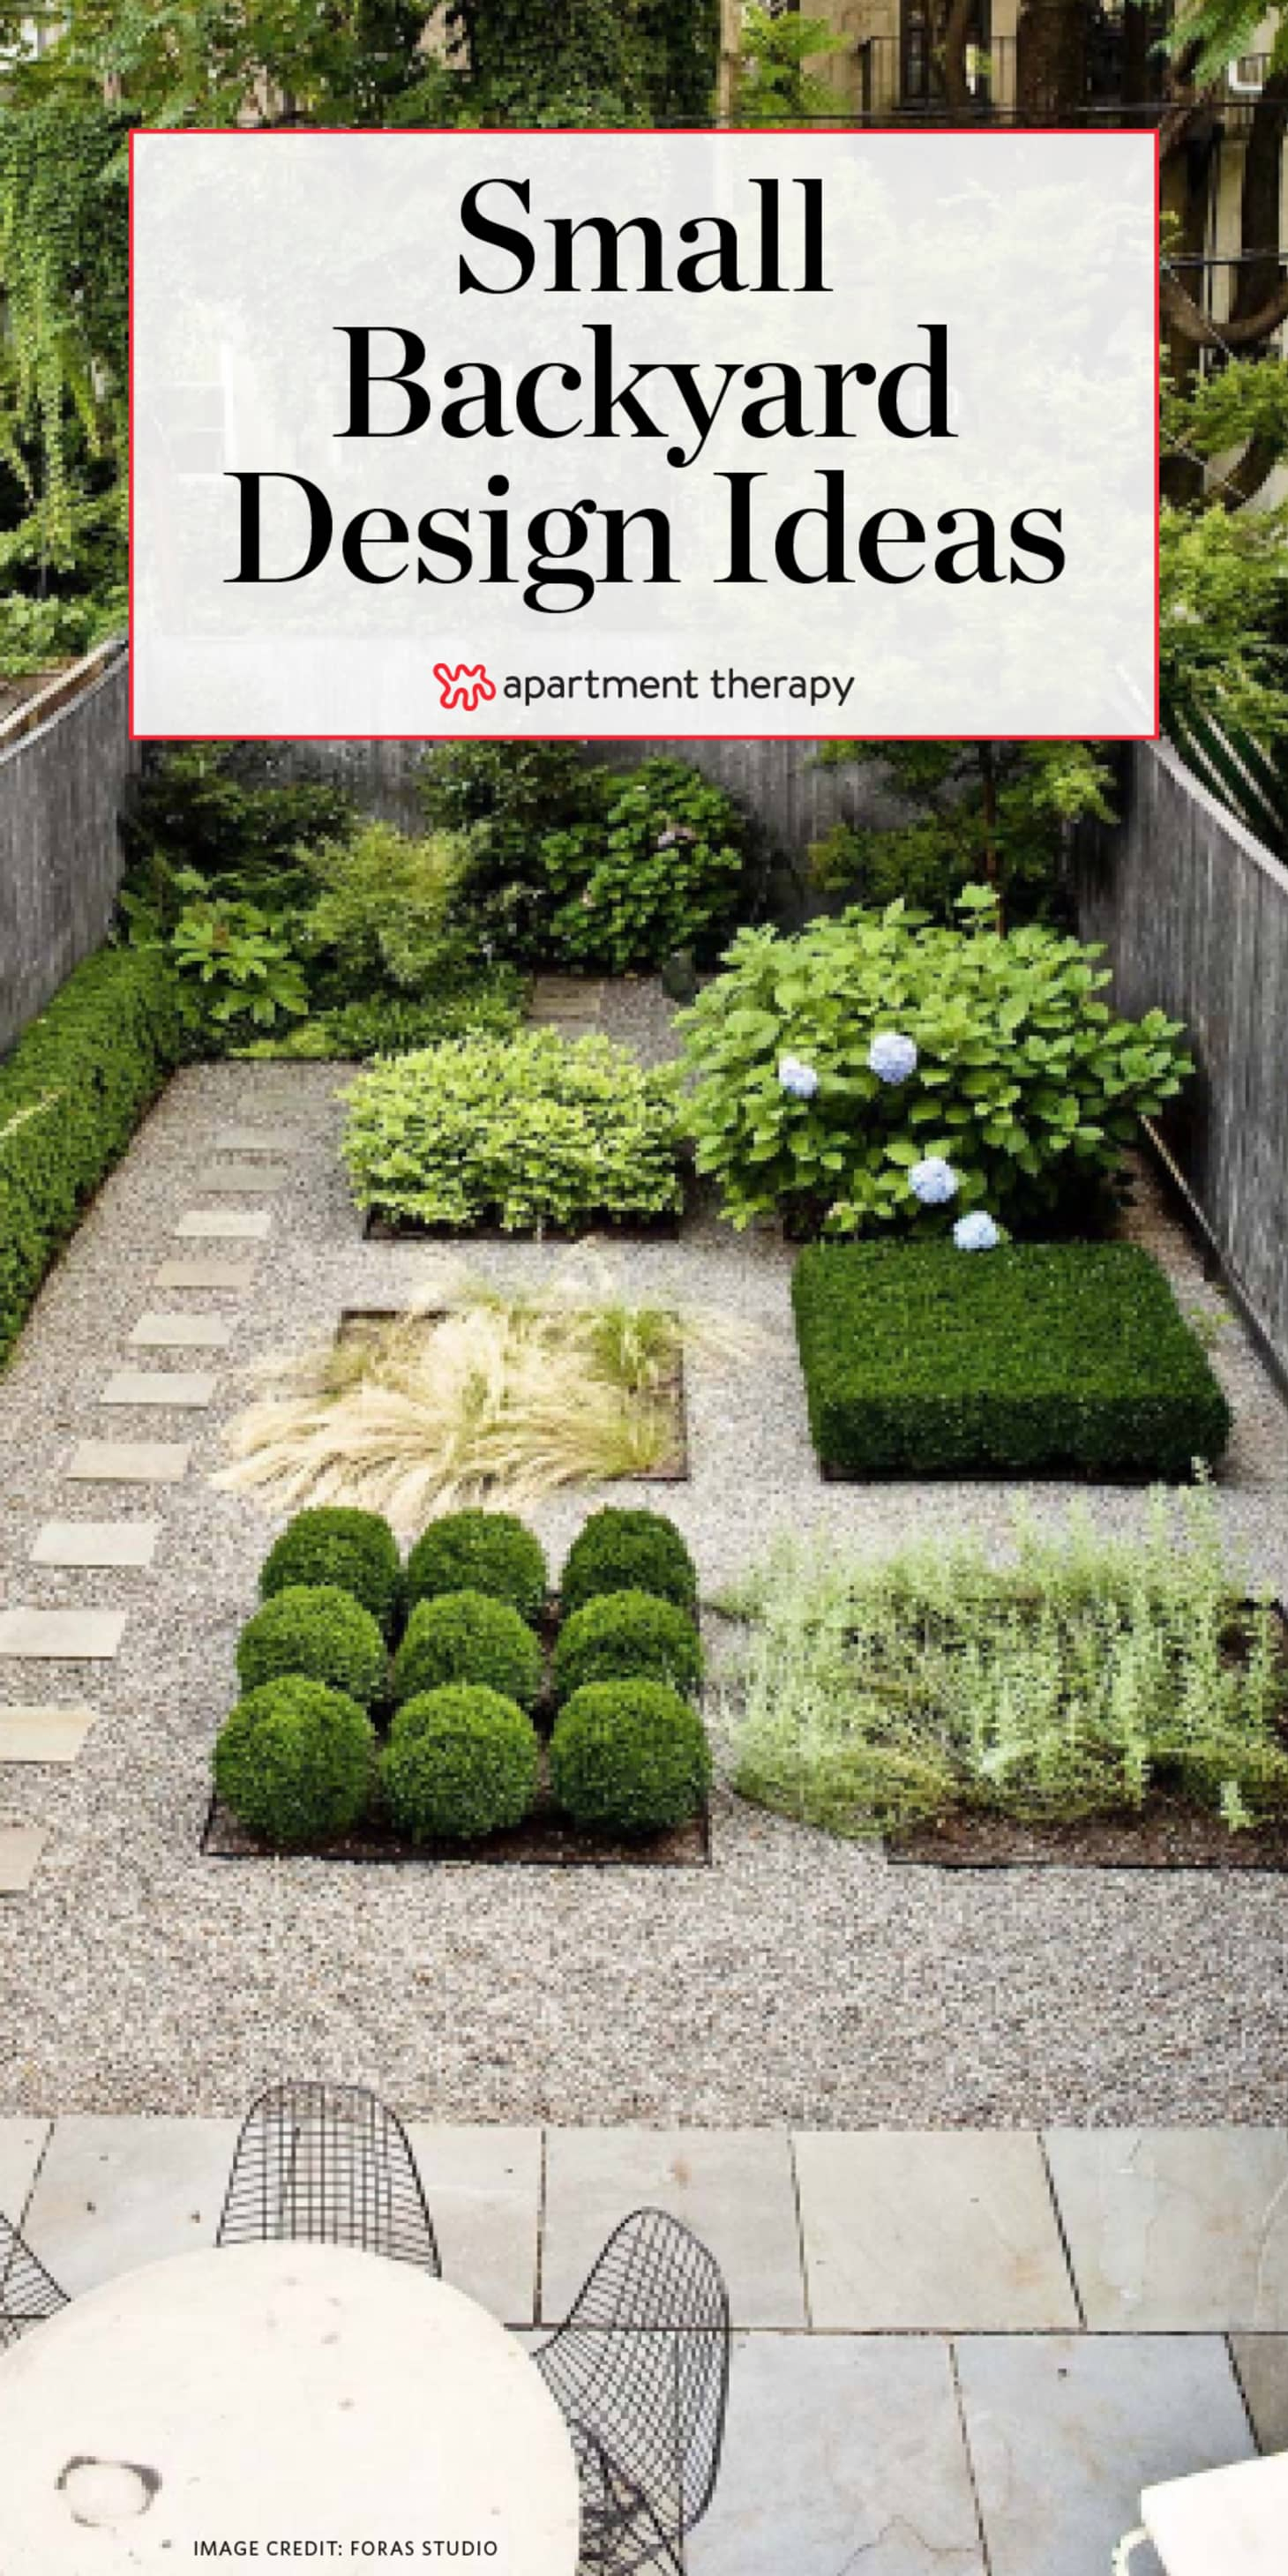 Small Backyard Design Ideas Inspiration Apartment Therapy for Ideas For Small Backyards